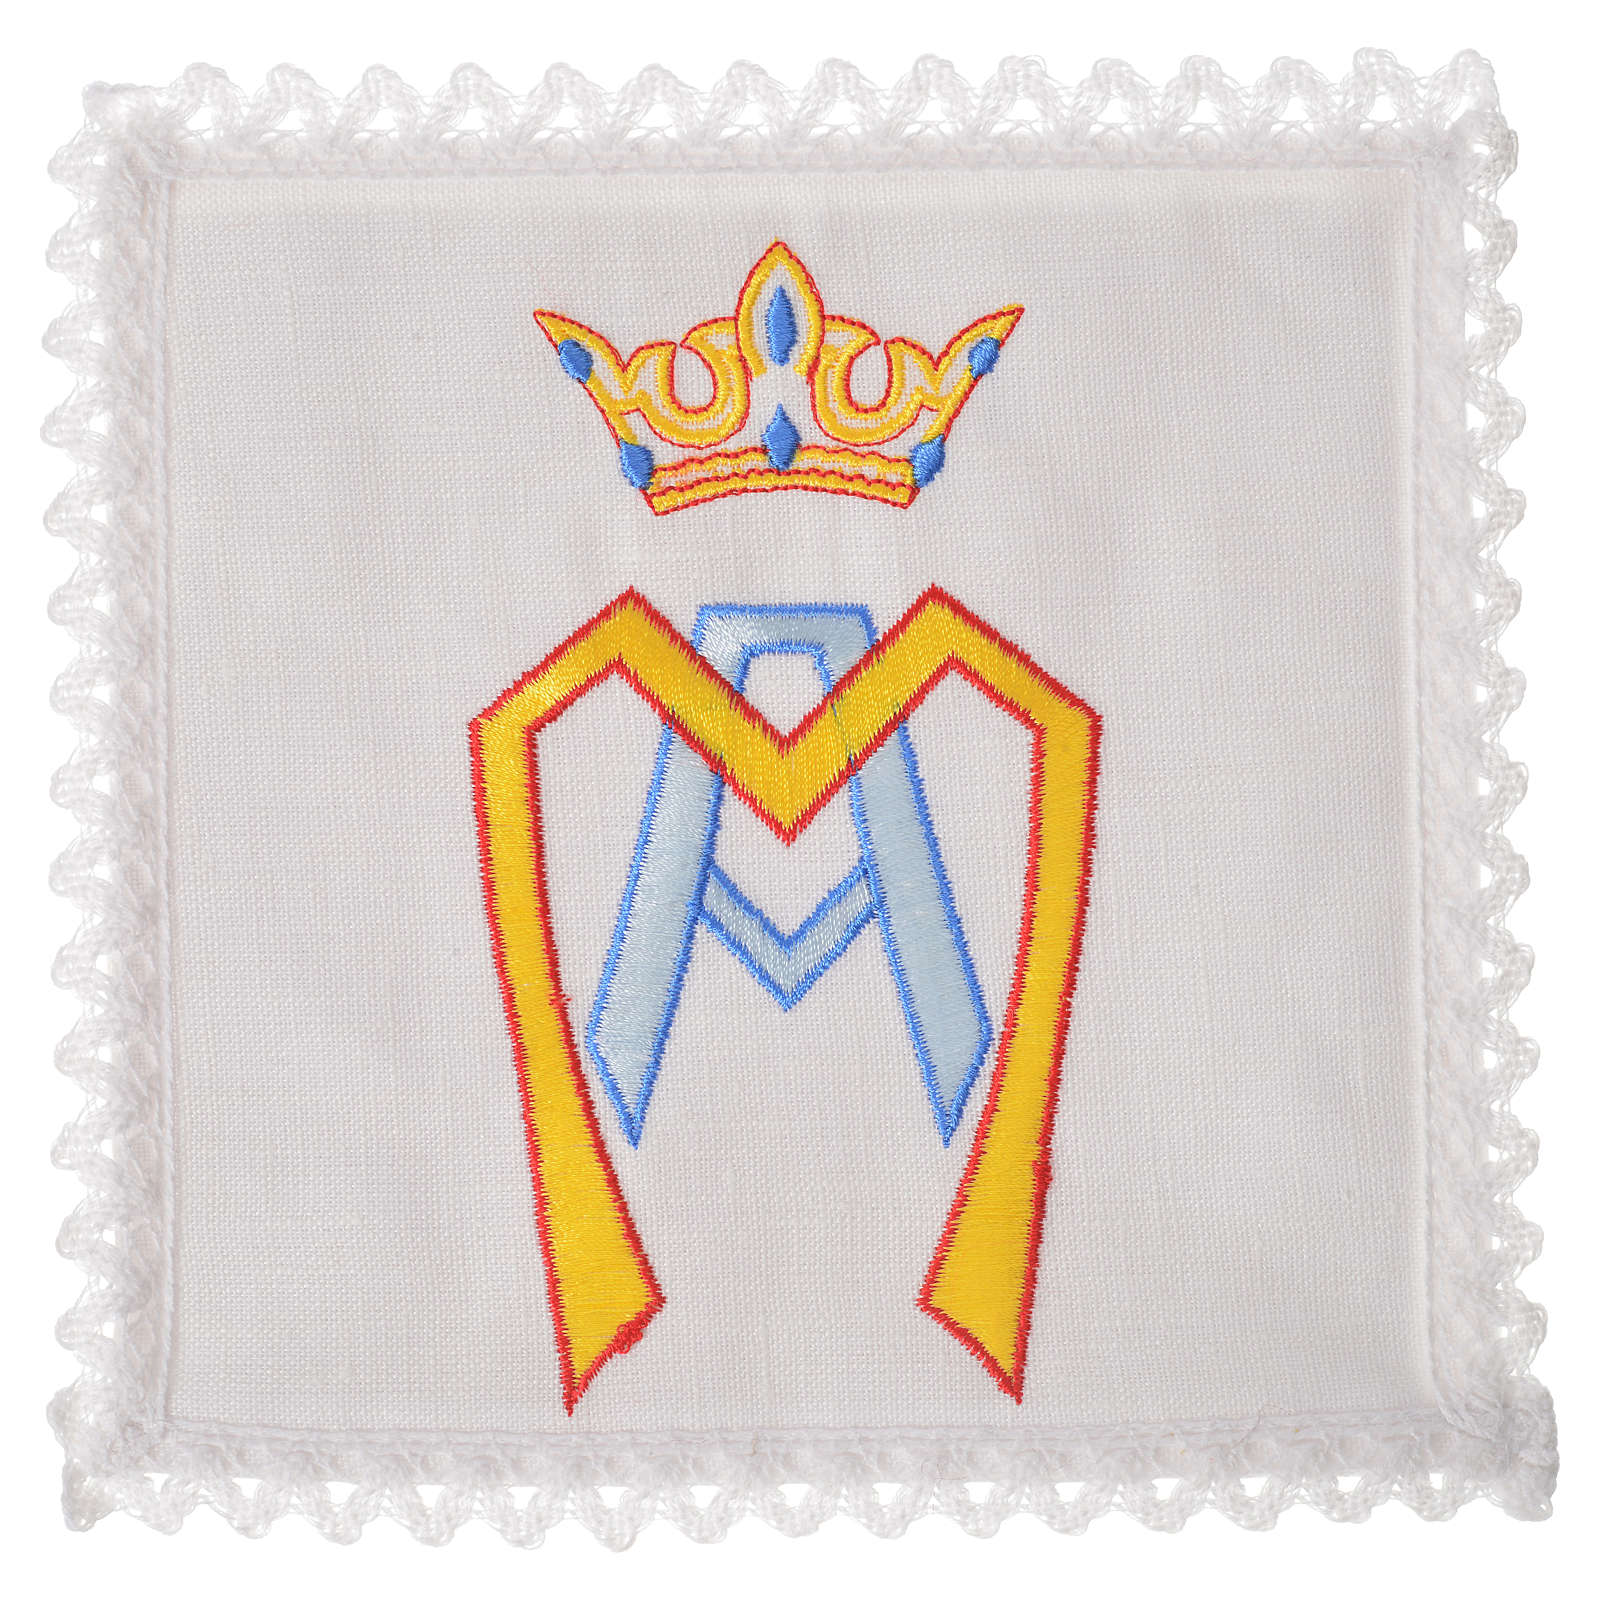 Altar linens set, 100% linen with stylised Marian symbol 4